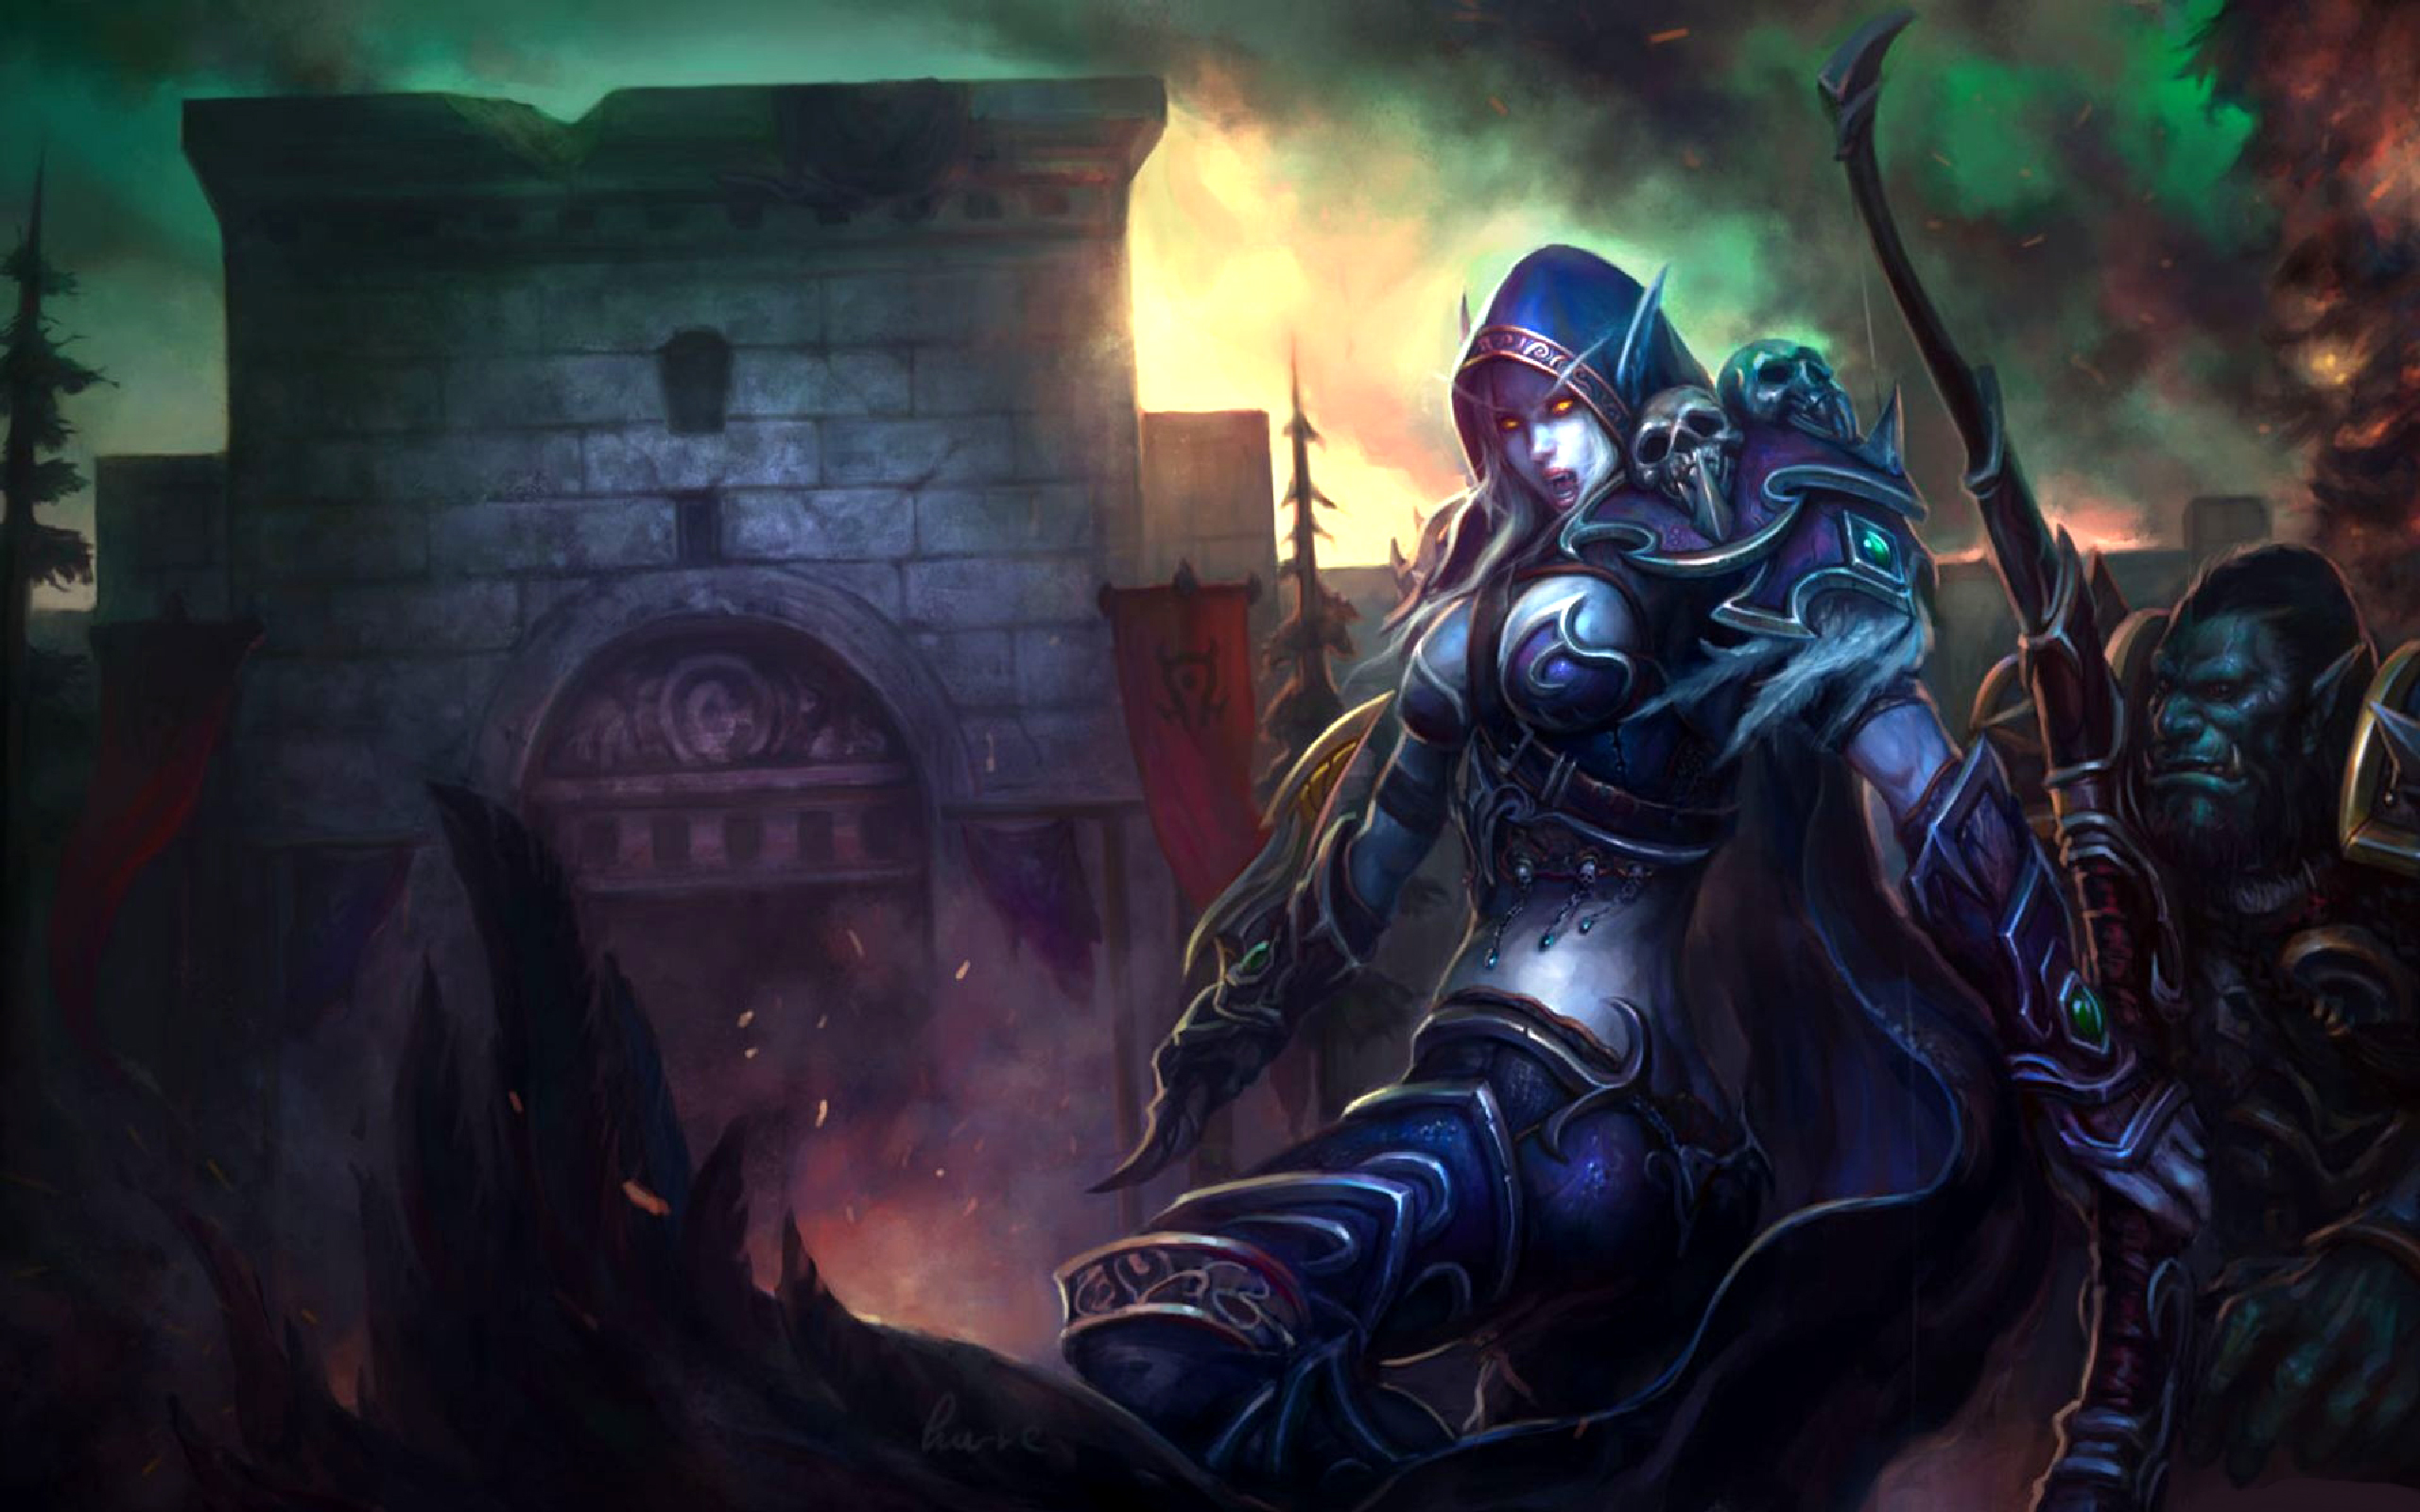 Free Download Night Elf Assault Art Id 28061 2560x1600 For Your